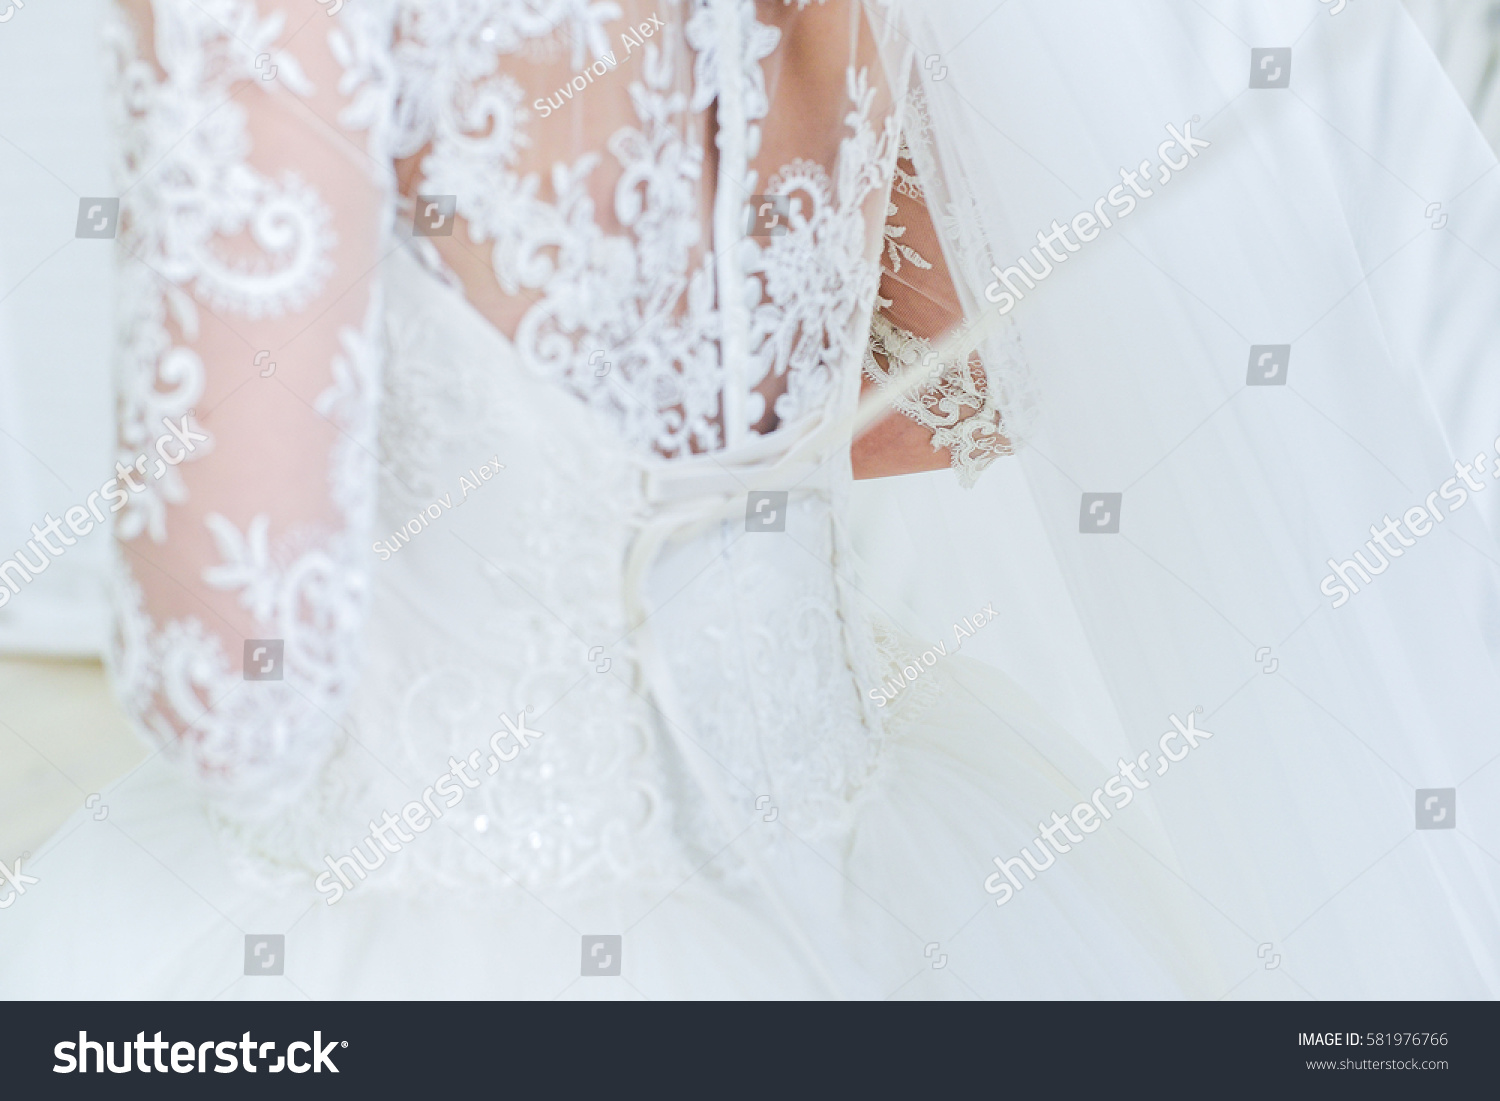 Garter on leg bride slim sexy stock photo 581976766 for Garter under wedding dress